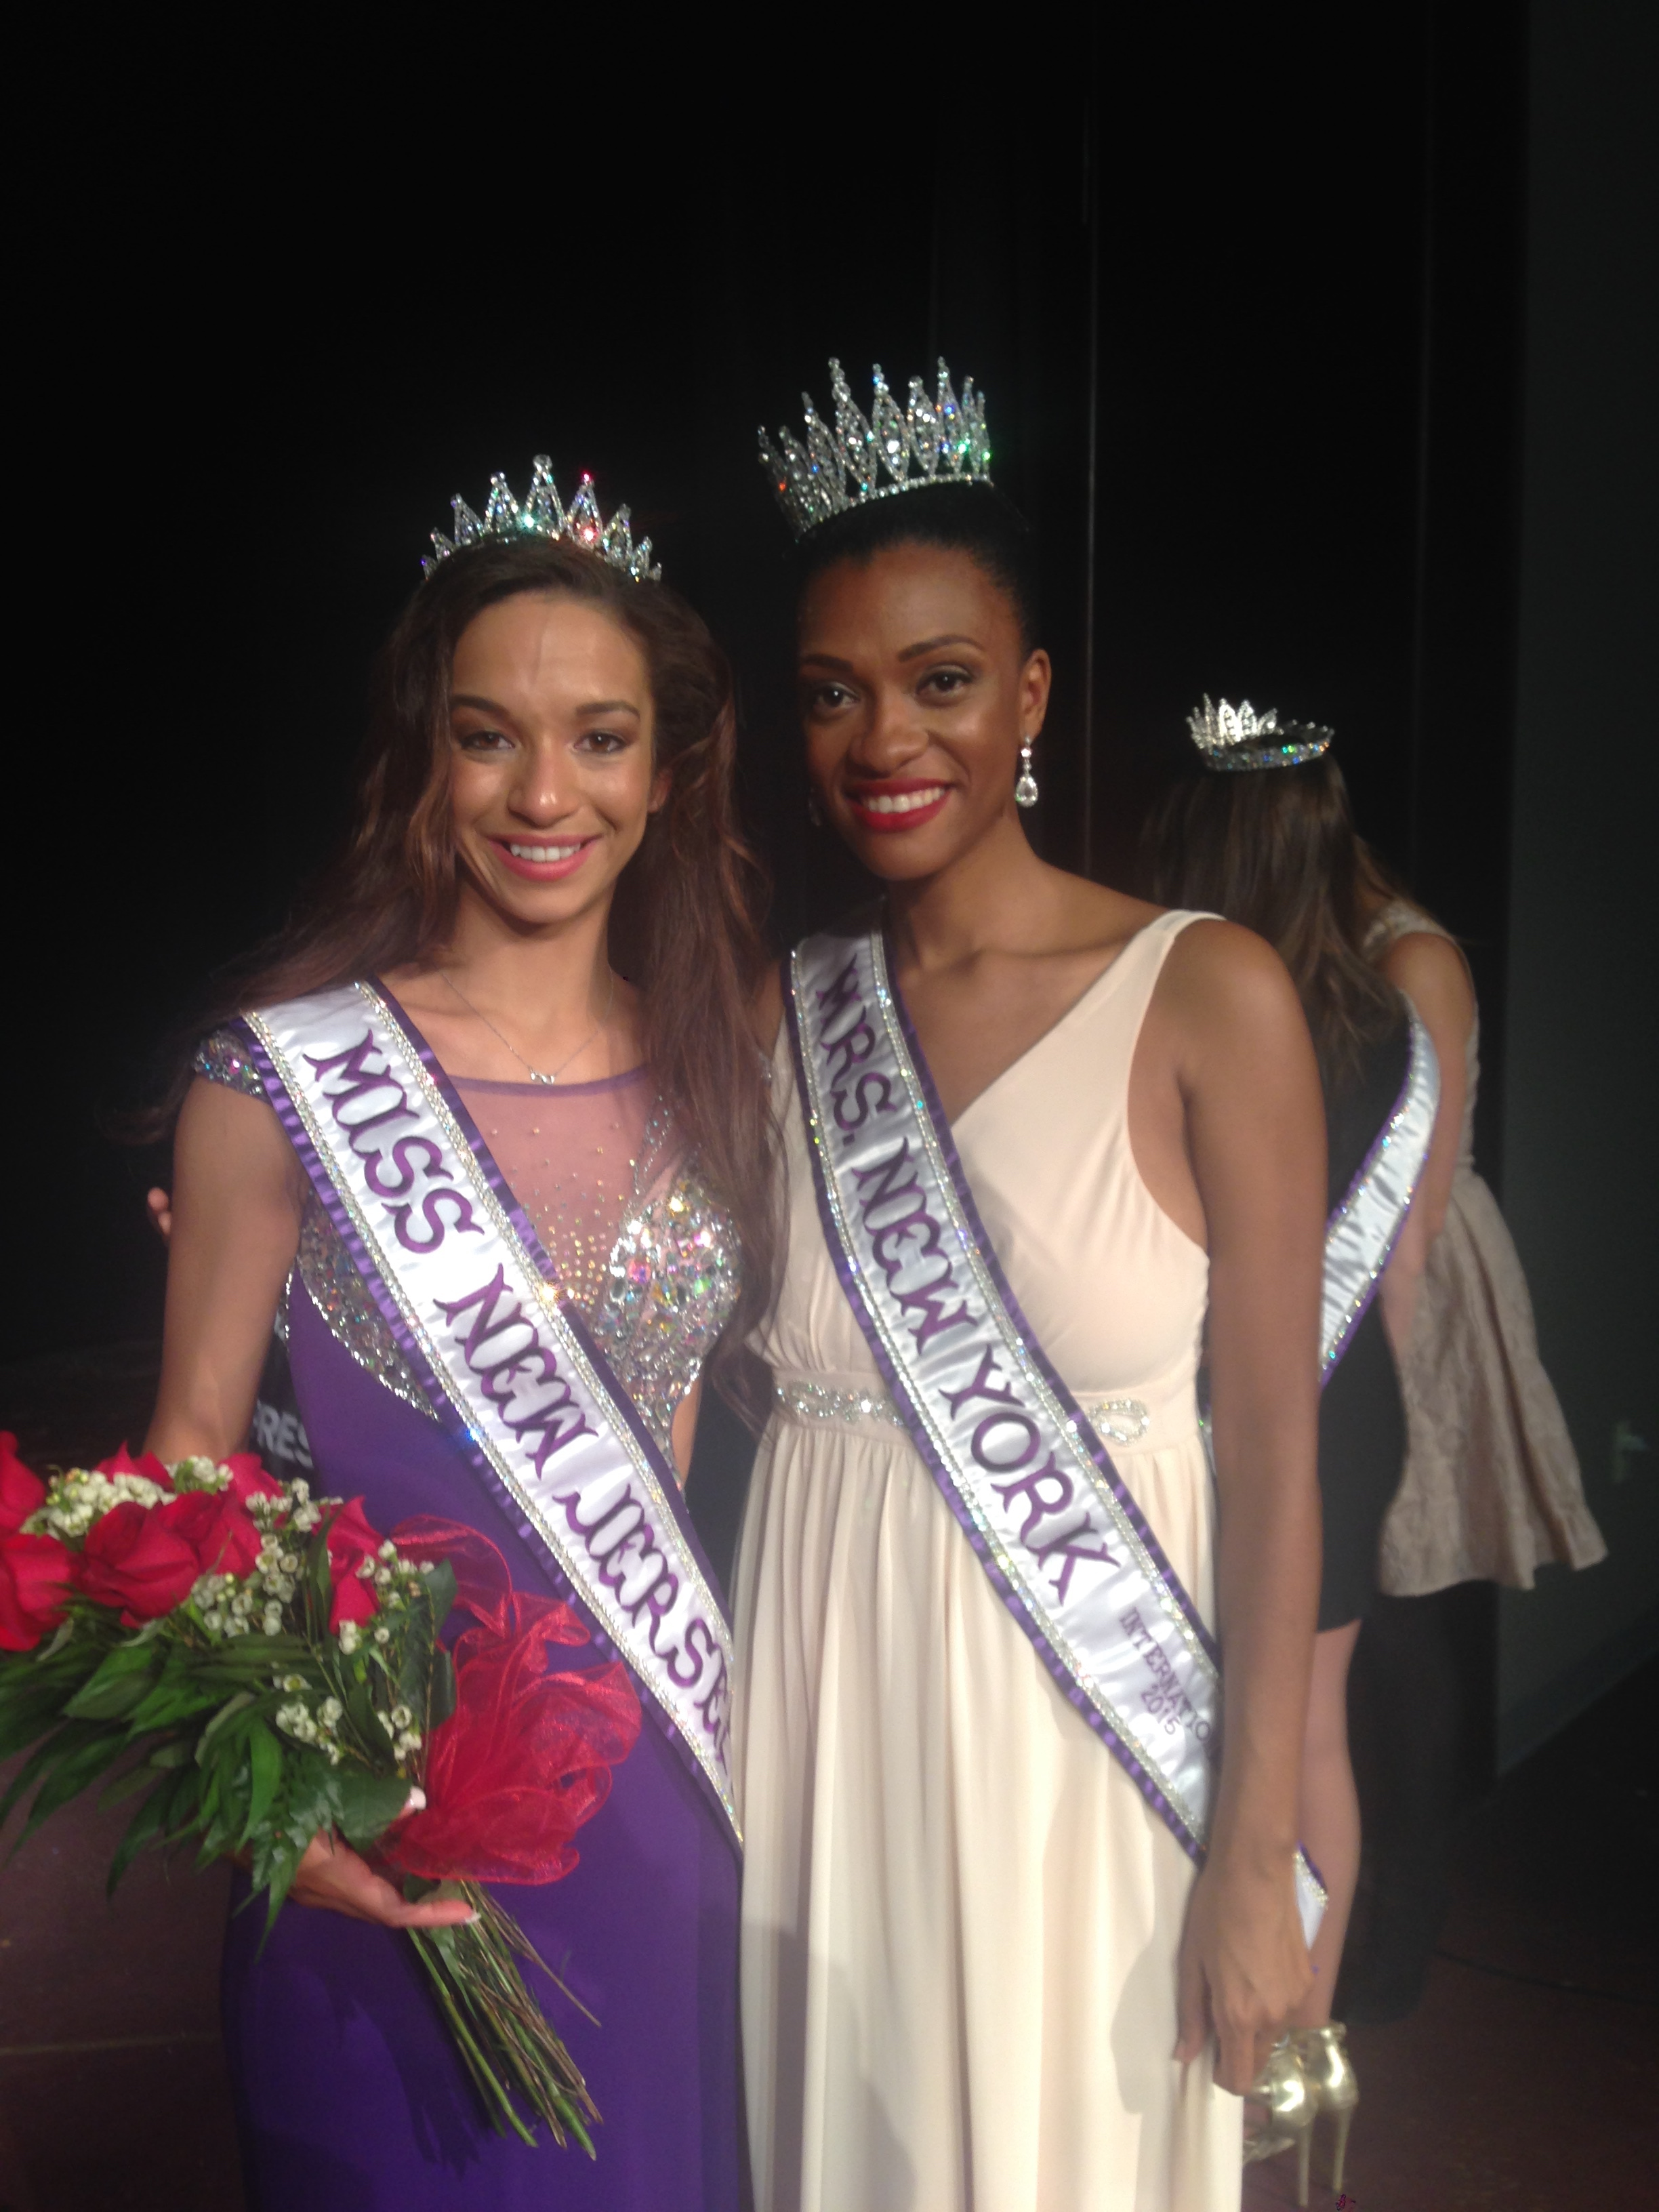 New crowned Miss New Jersey Abbey O'Connor